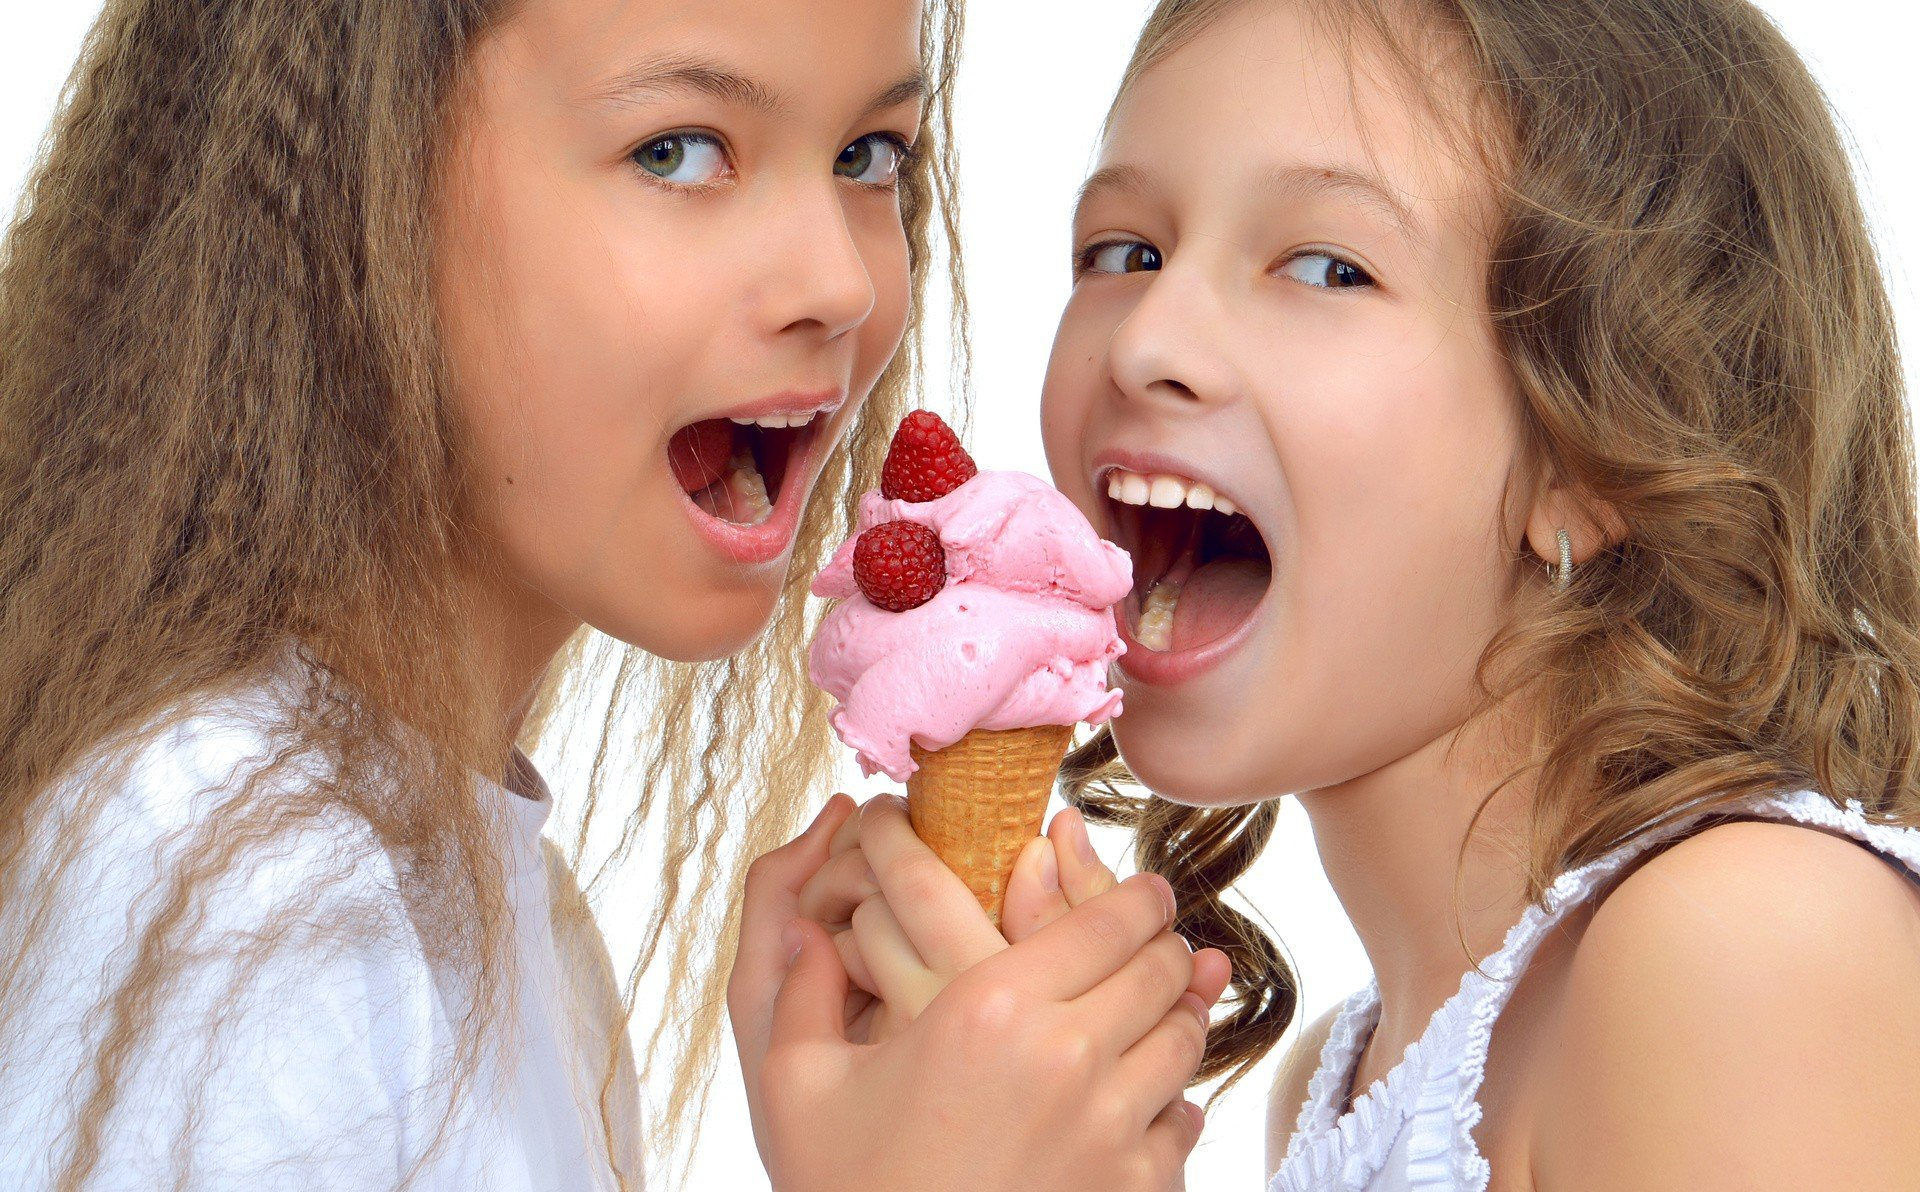 Outdoor Ice Cream Eat Licking High Resolution Stock Photography And Images